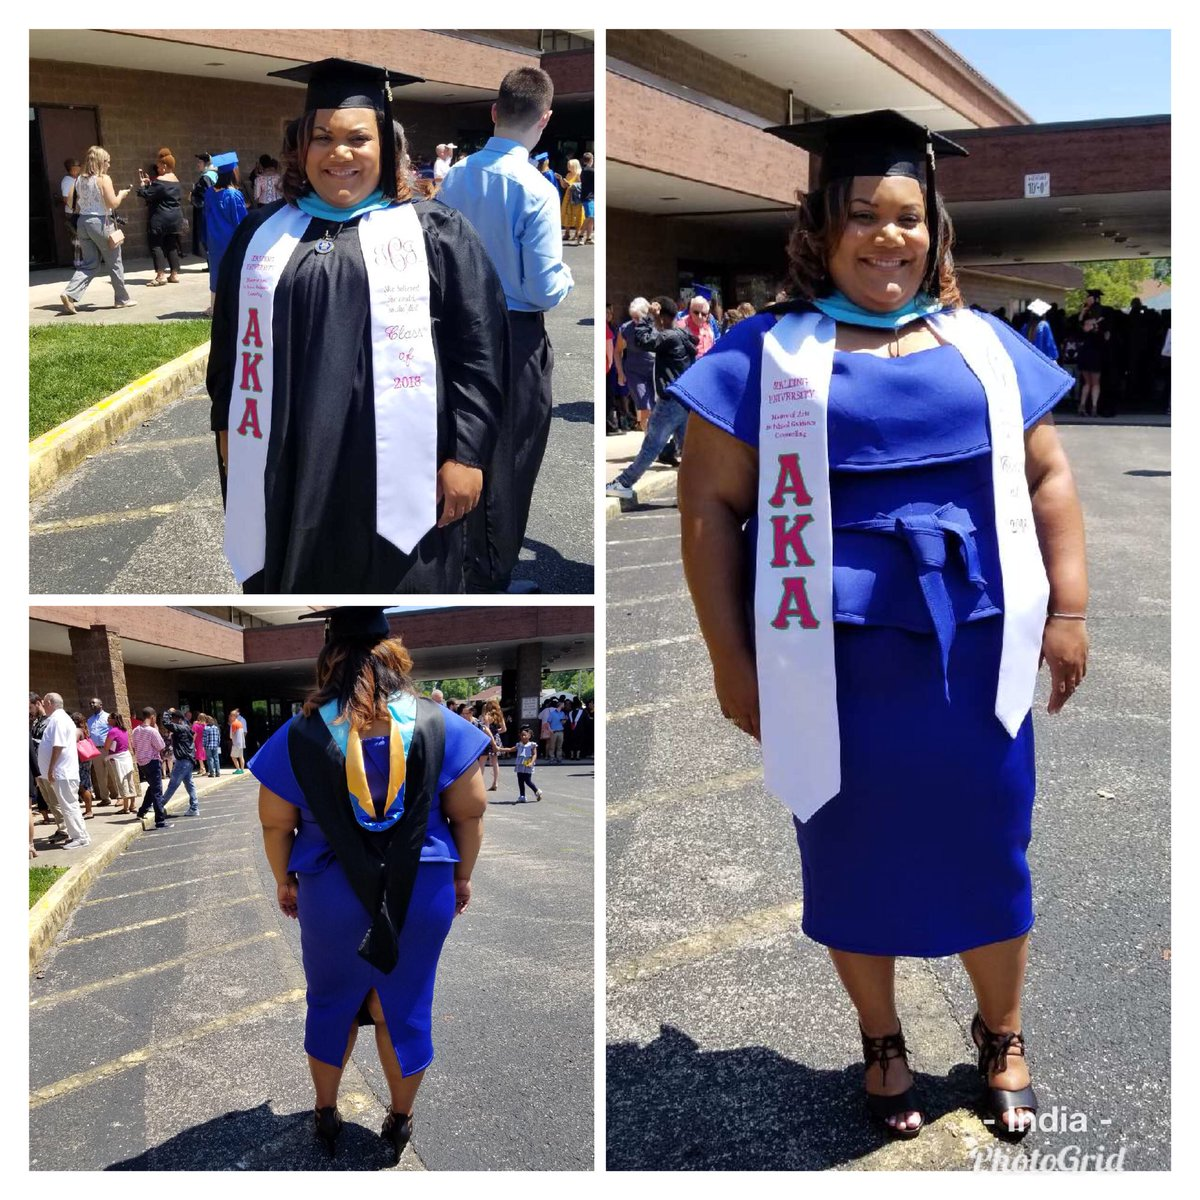 Today I became the first person in my family to get a Masters Degree! So proud yet humbled to be able to accomplish such as honor like this. But it doesn't stop here, I gave to get that Dr. #GoalSetter #FutureCounselor #SpaldingU2018<br>http://pic.twitter.com/bWkdmzoBRs